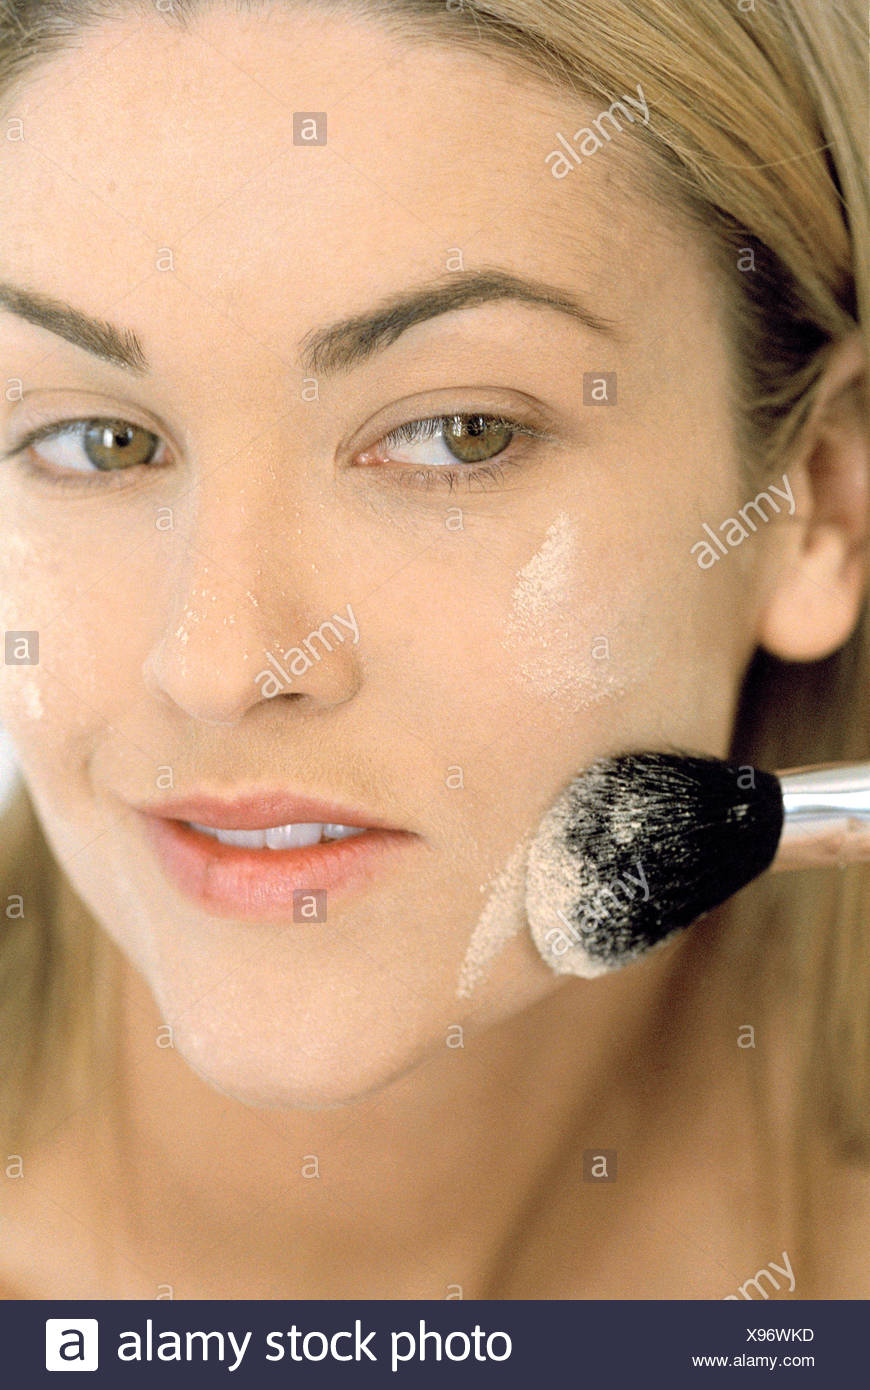 Female long straight blonde hair tucked behind ear applying powder face brush along chin, powder left on nose and cheeks - Stock Image